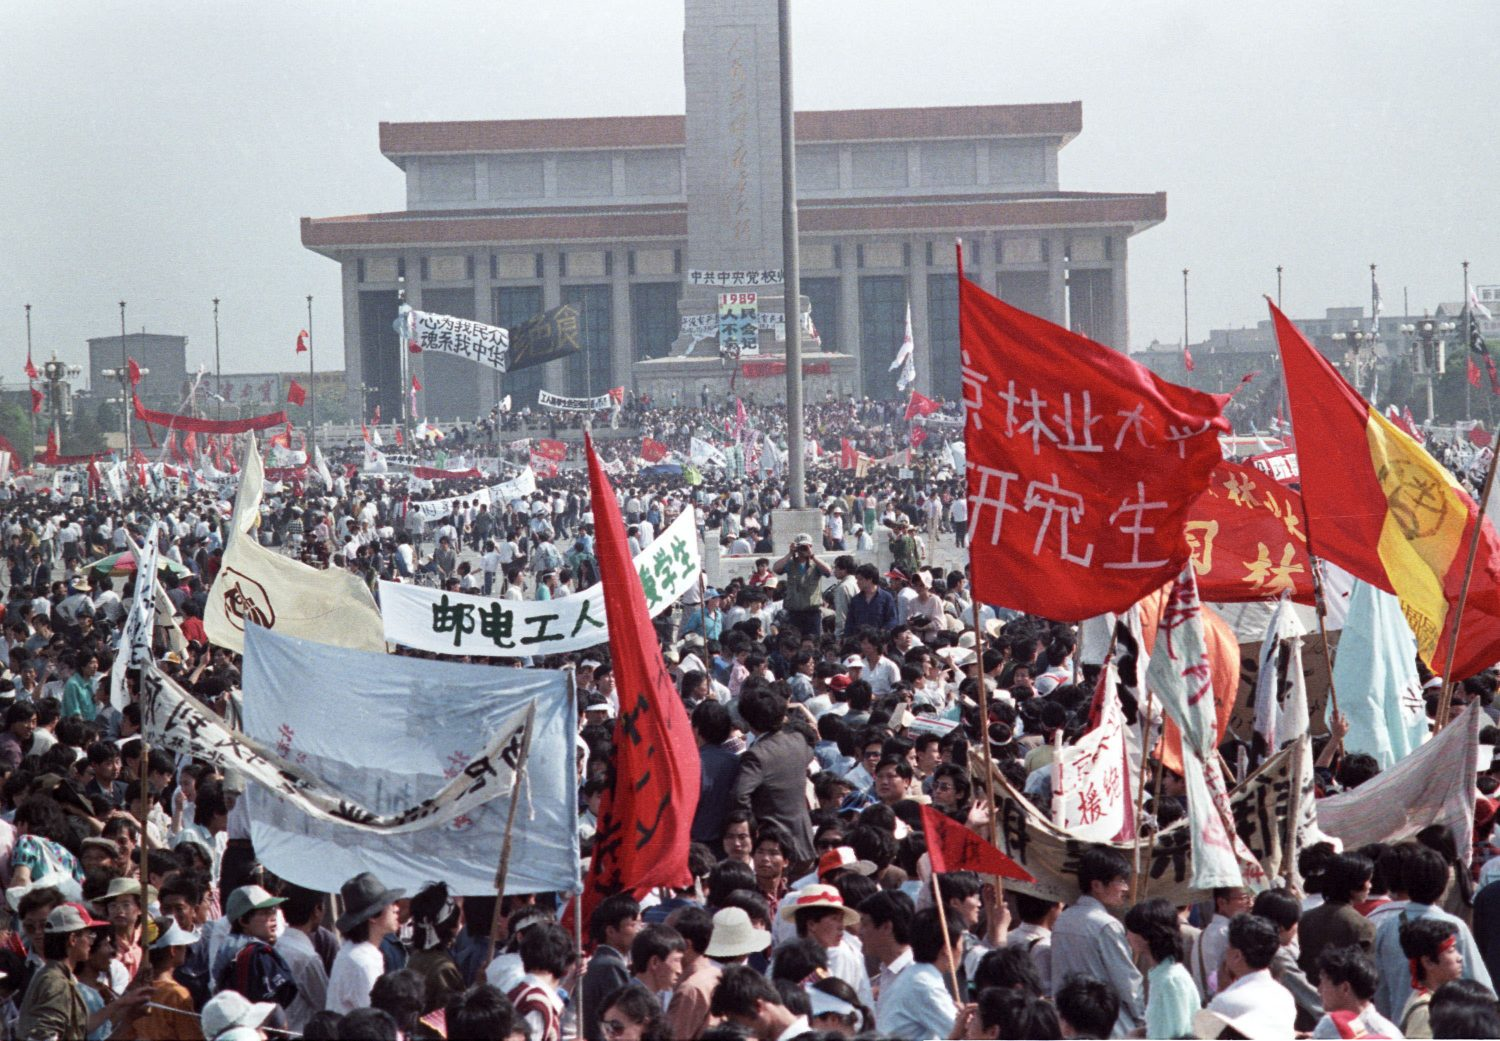 FILE PHOTO: Hundreds of thousands of people fill Beijing's central Tiananmen Square, China, May 17, 1989 in front of the Monument to the People's Heroes and Mao's mausoleum. REUTERS/Ed Nachtrieb/File Photo